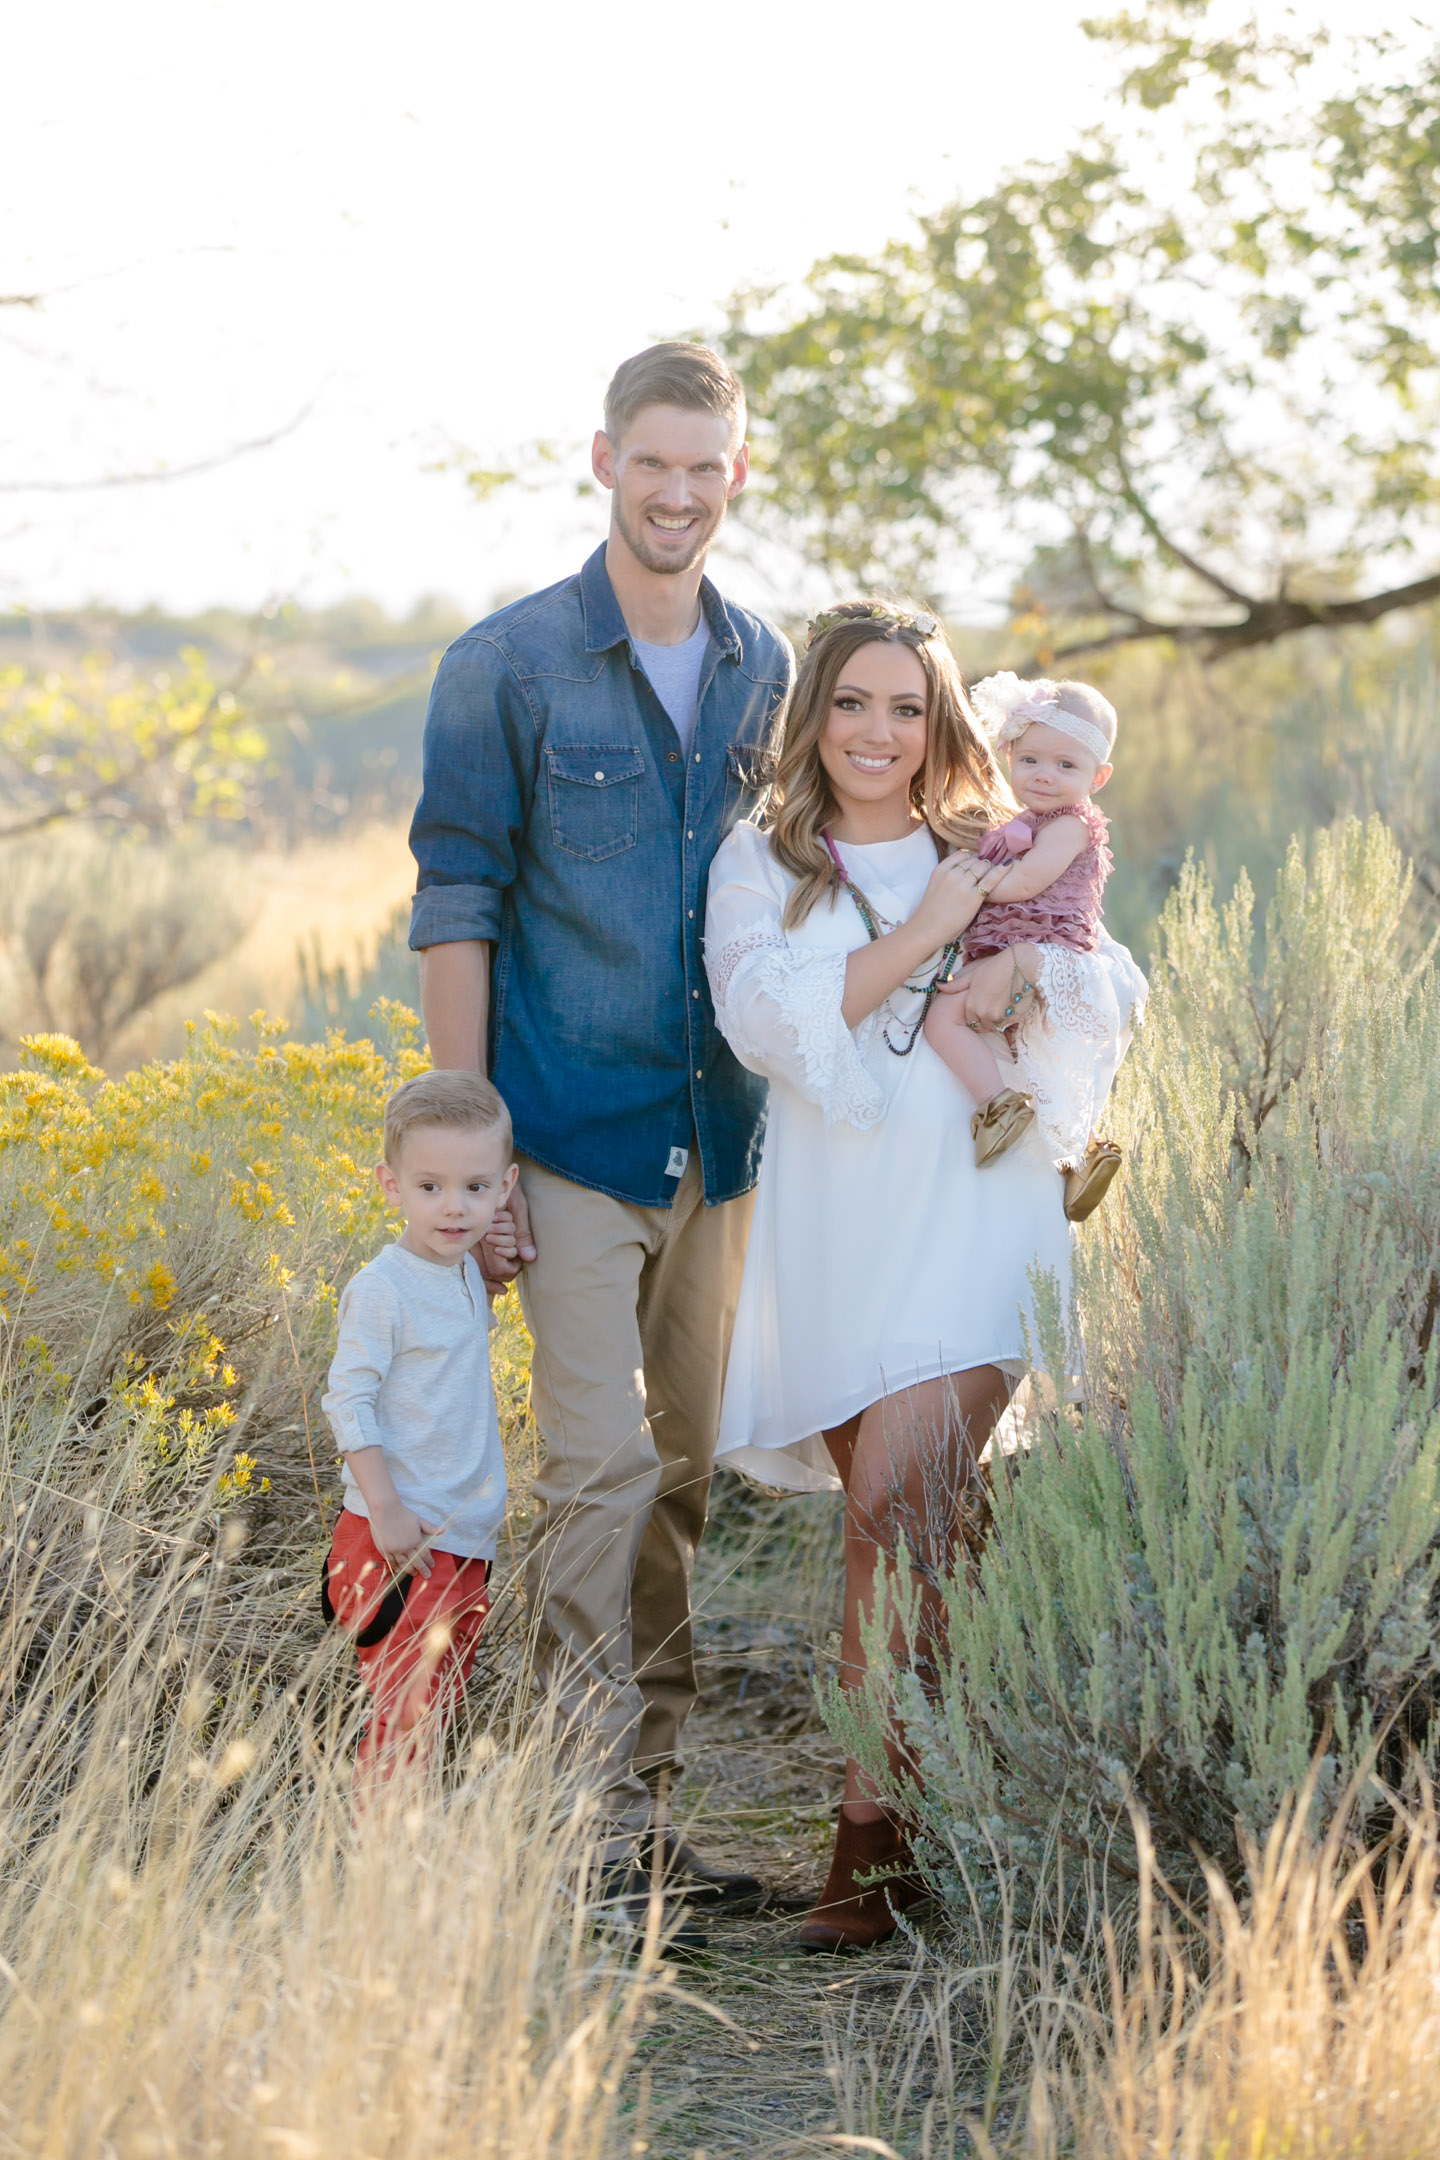 EK-Studios-Utah-Wedding-Photographers-Bohemian-inspired-Family-Photoshoot-utah018-Blog.jpg